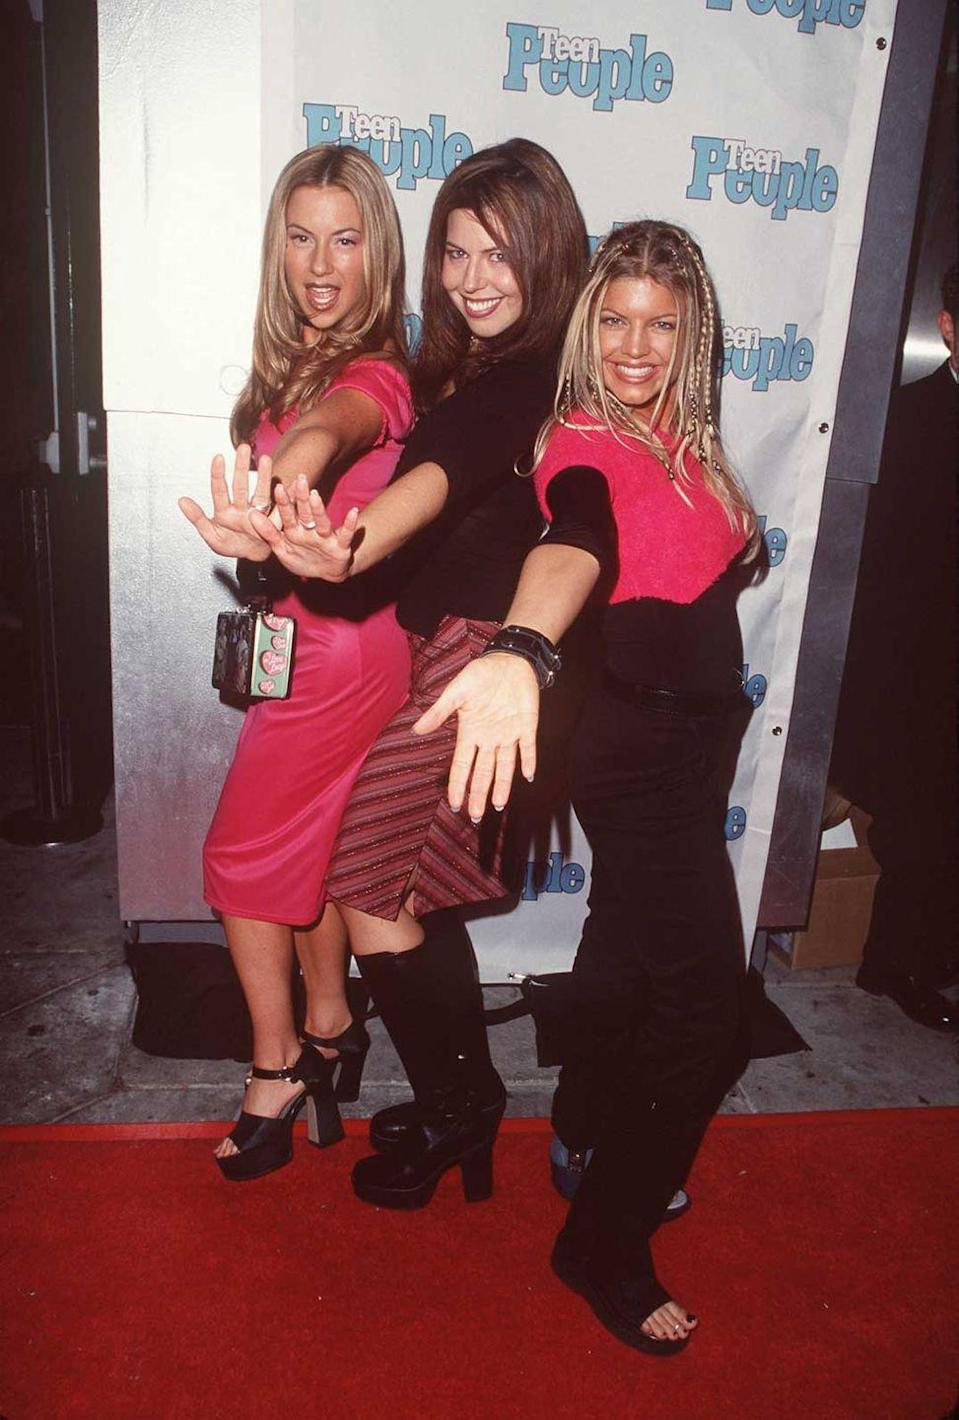 <p>Before Fergie joined The Black Eyed Peas, she was in a girl group called Wild Orchid. The members were seen at Teen People's First Anniversary Party in 1999. </p>